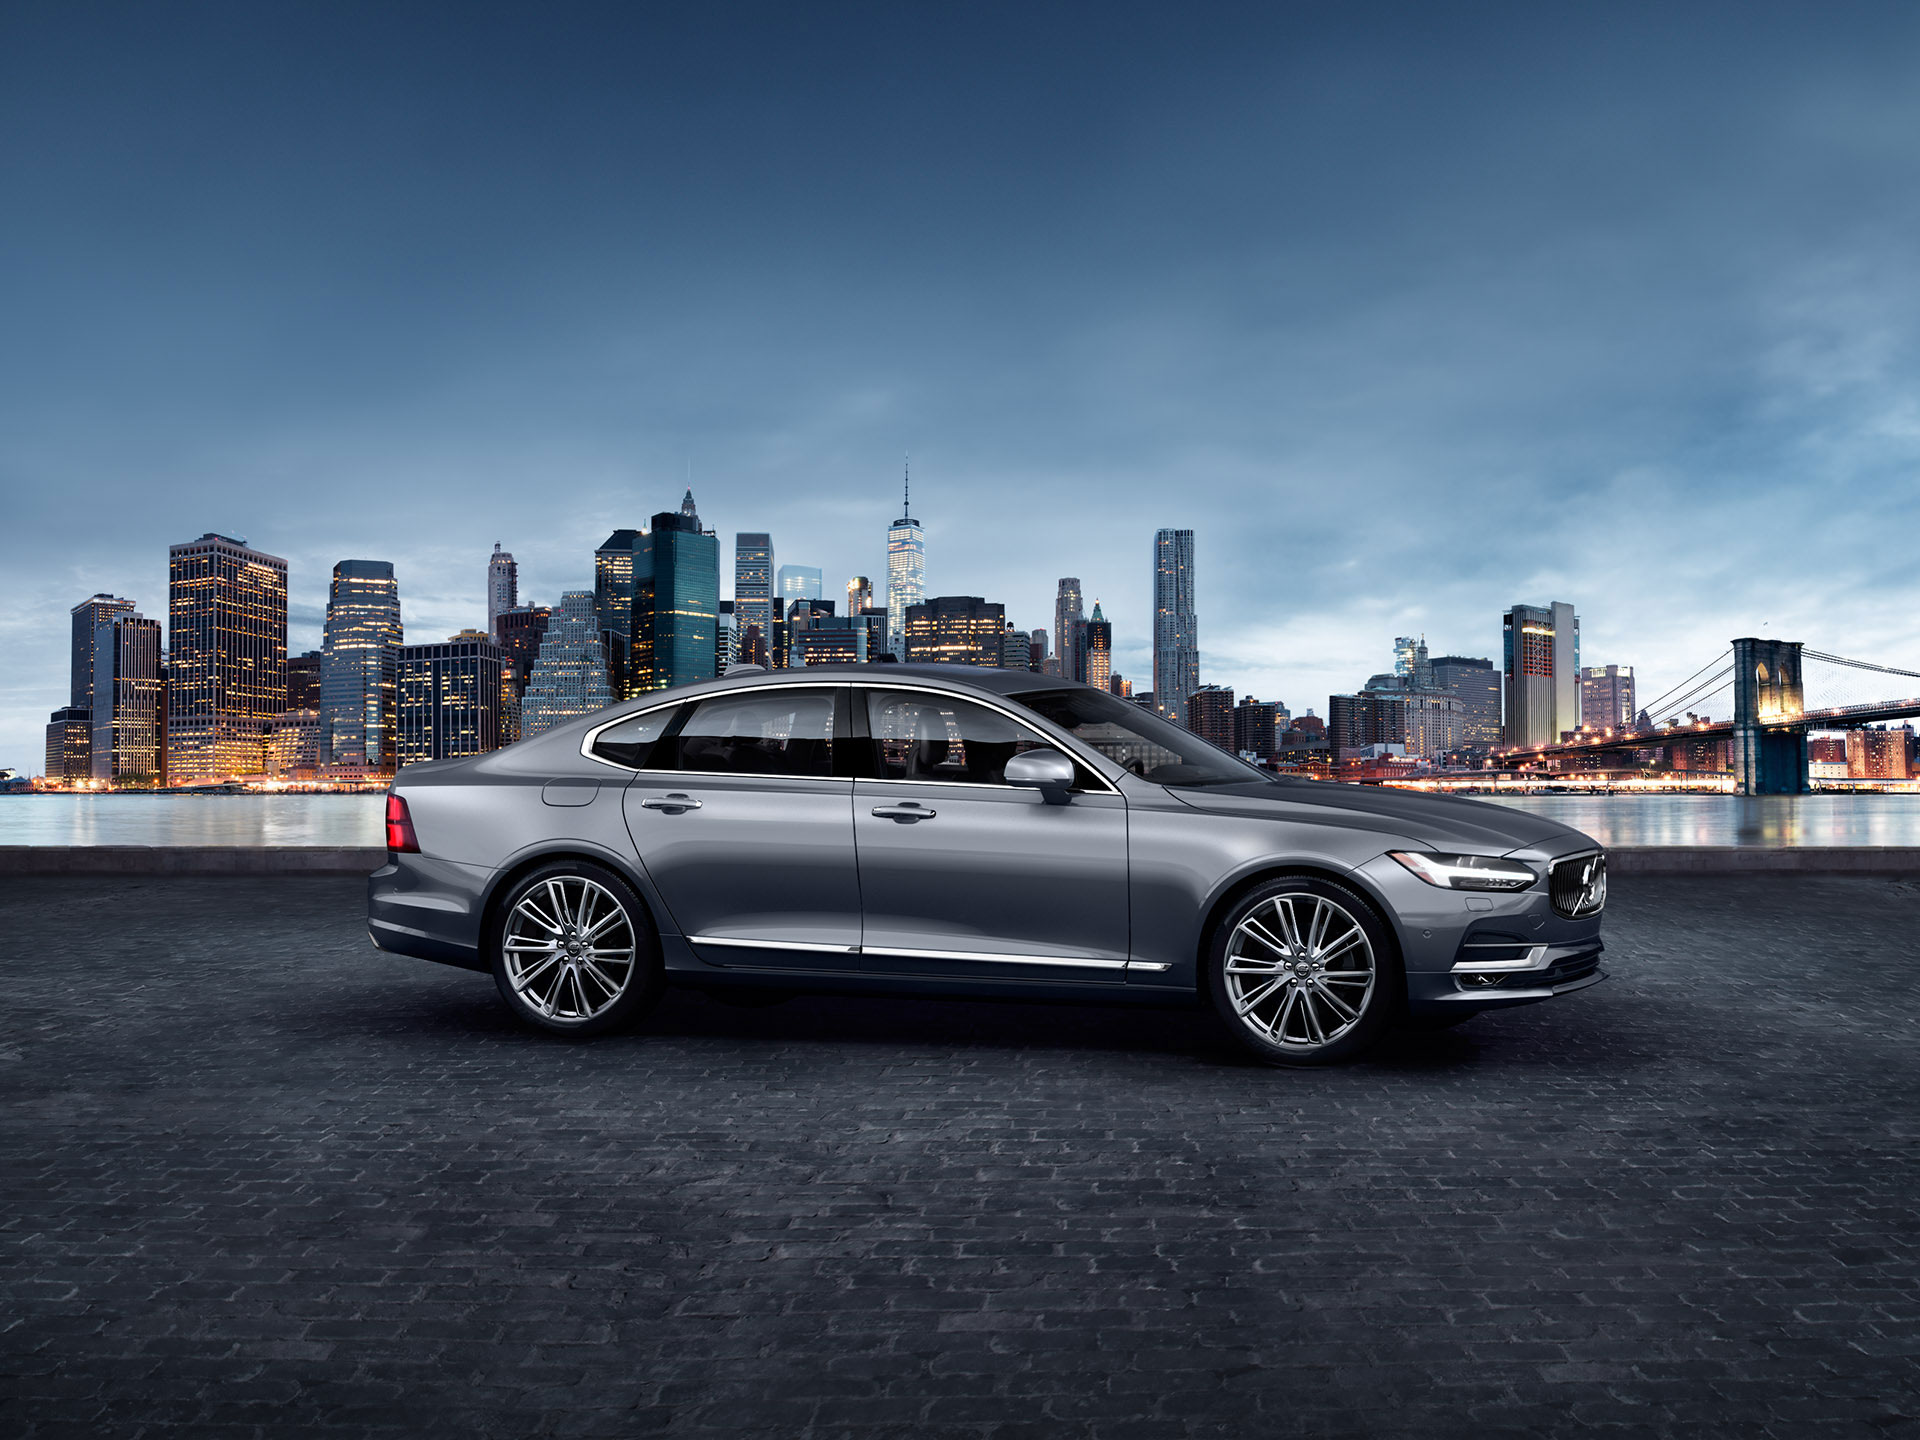 Volvo-NYC-S90